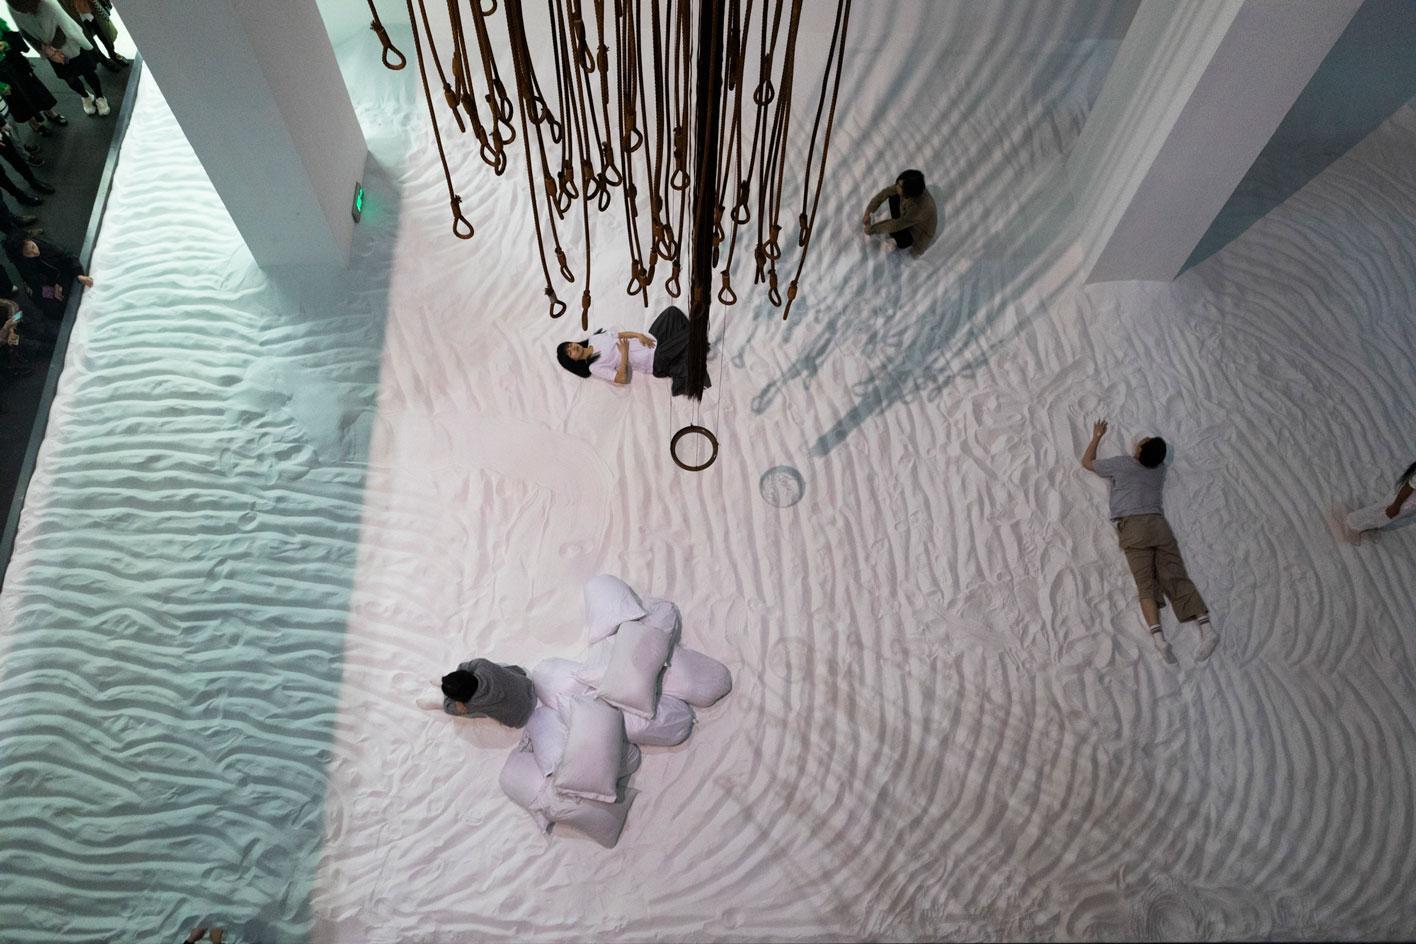 Pan Daijing,Done Duet, (2021), installationview at the 13th Shanghai Biennale 'Bodies ofWater', Shanghai, 2021.Courtesy PowerStation of Art